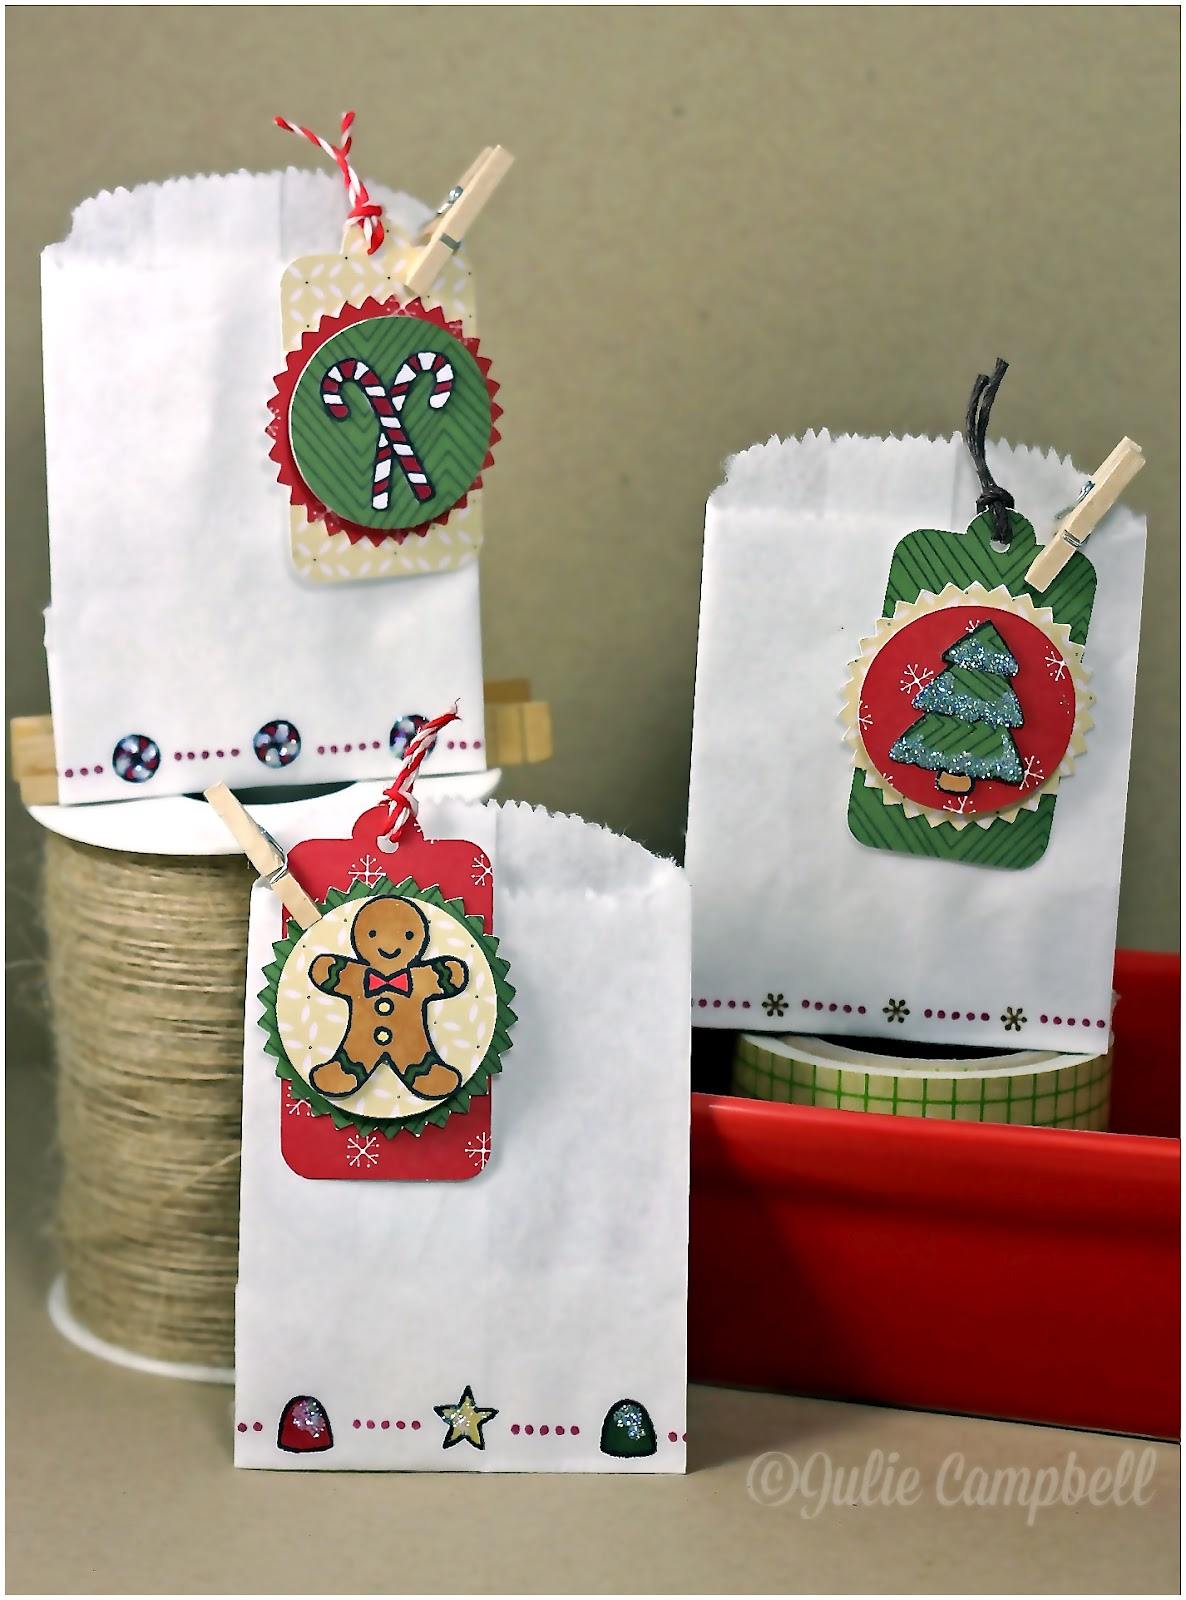 Stamped in his image lawn fawn sweet christmas treat bag trio